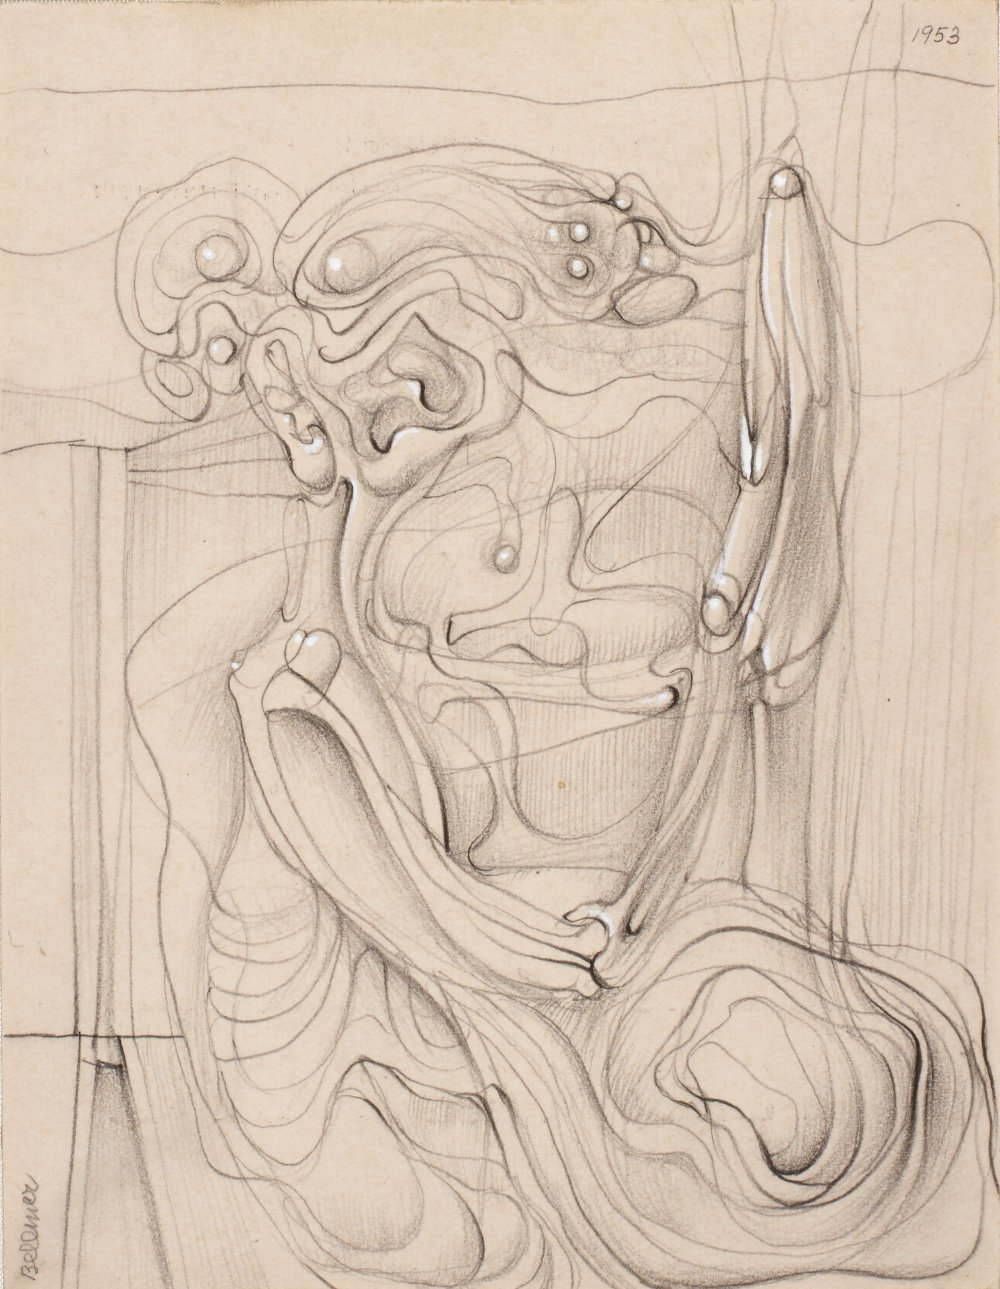 Untitled [Reversible Drawing]